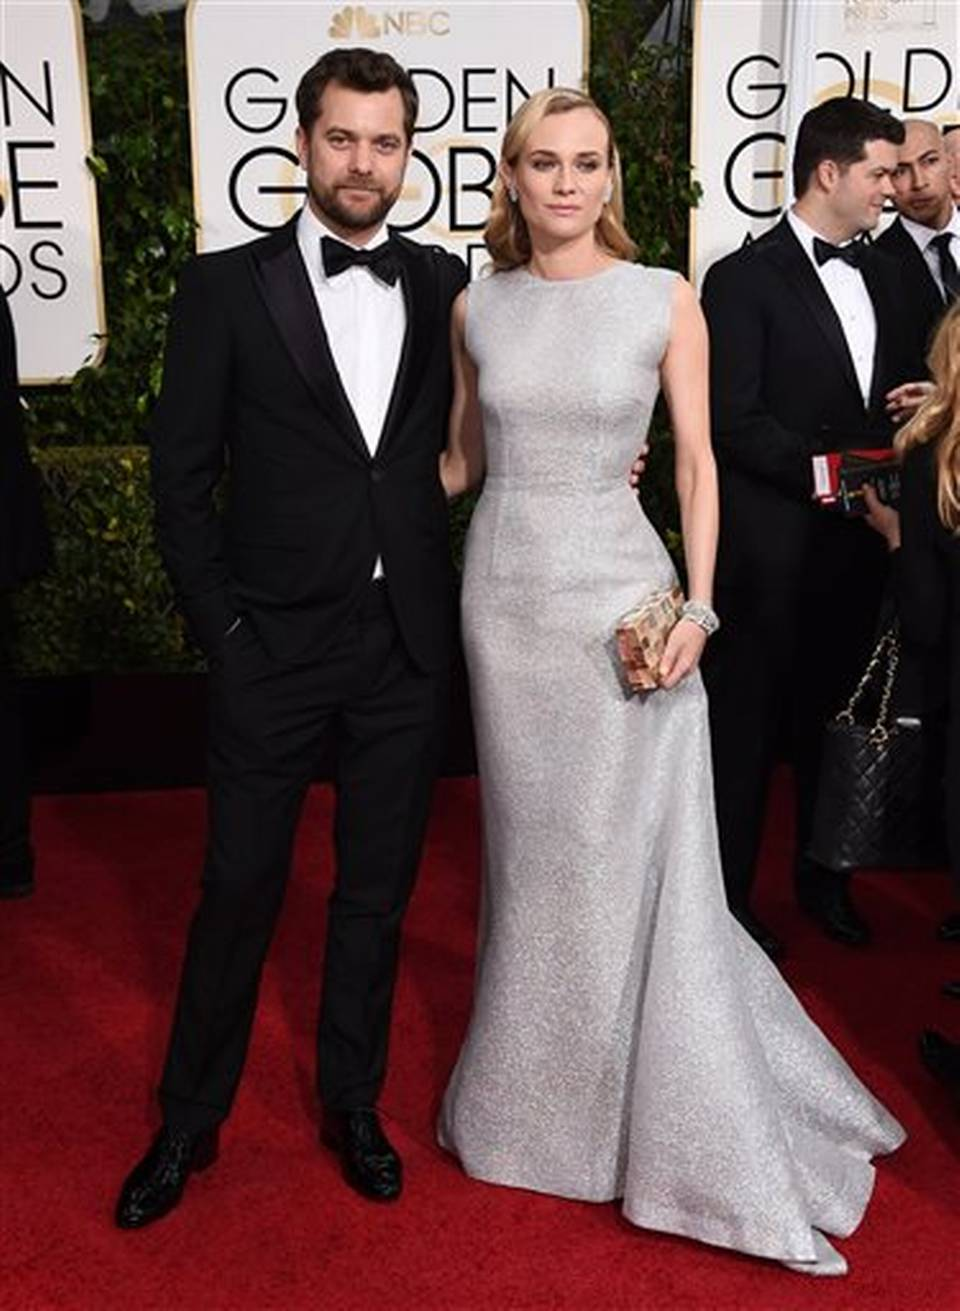 Diane Kruger and Joshua Jackson attend the 72nd Annual Golden Globe Awards at The Beverly Hilton Hotel on January 11, 2015 in Beverly Hills, California.